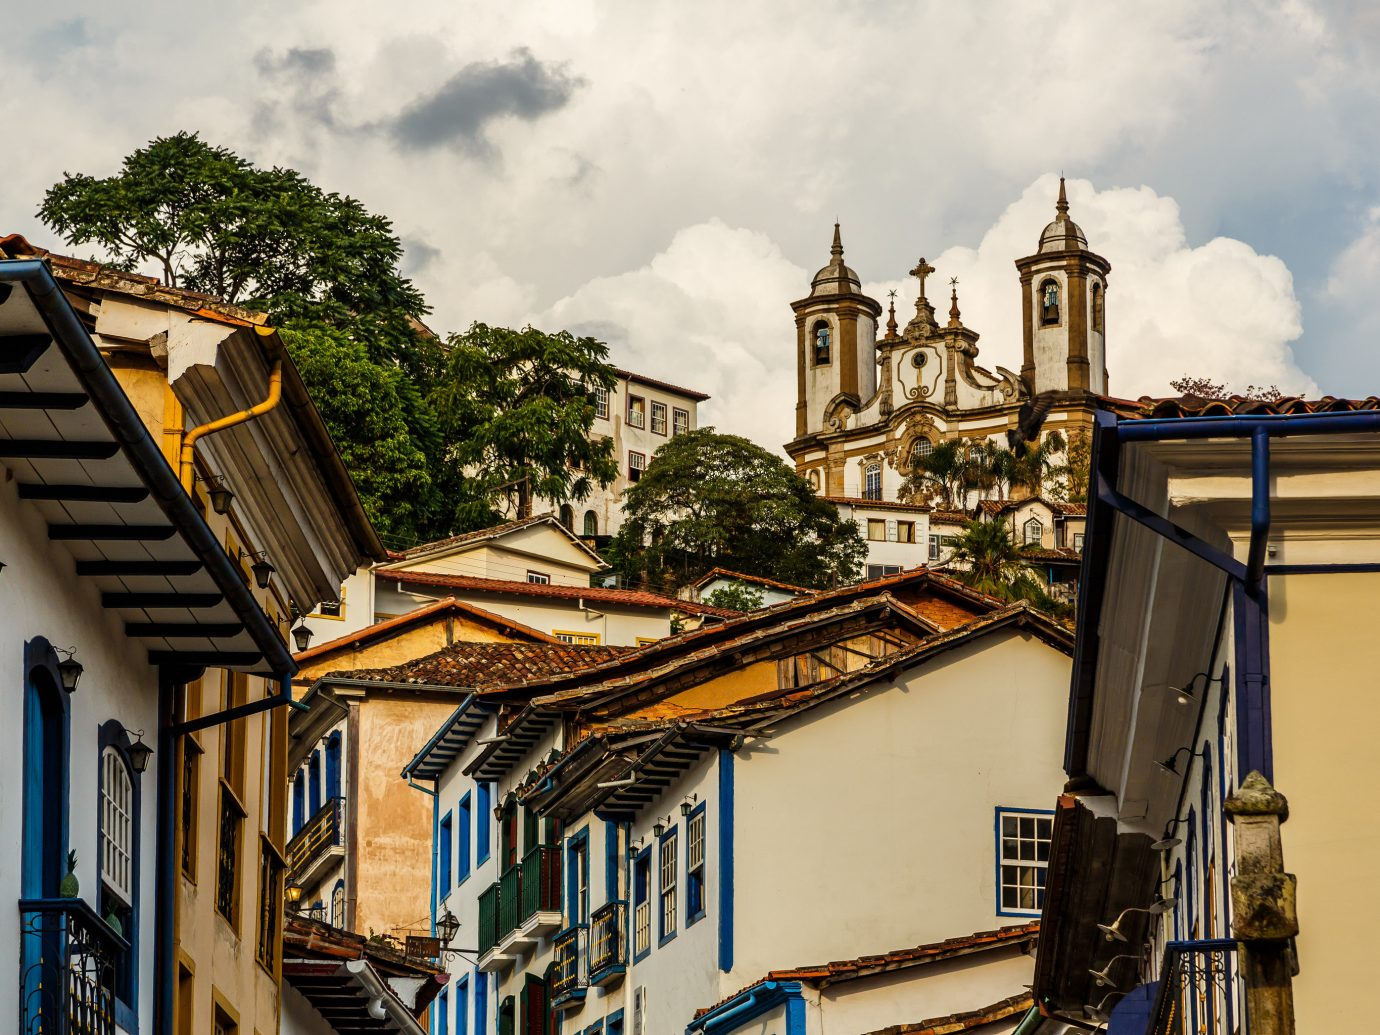 Beaches Brazil Trip Ideas outdoor Town house urban area building road City human settlement street cityscape way travel place of worship day crowd